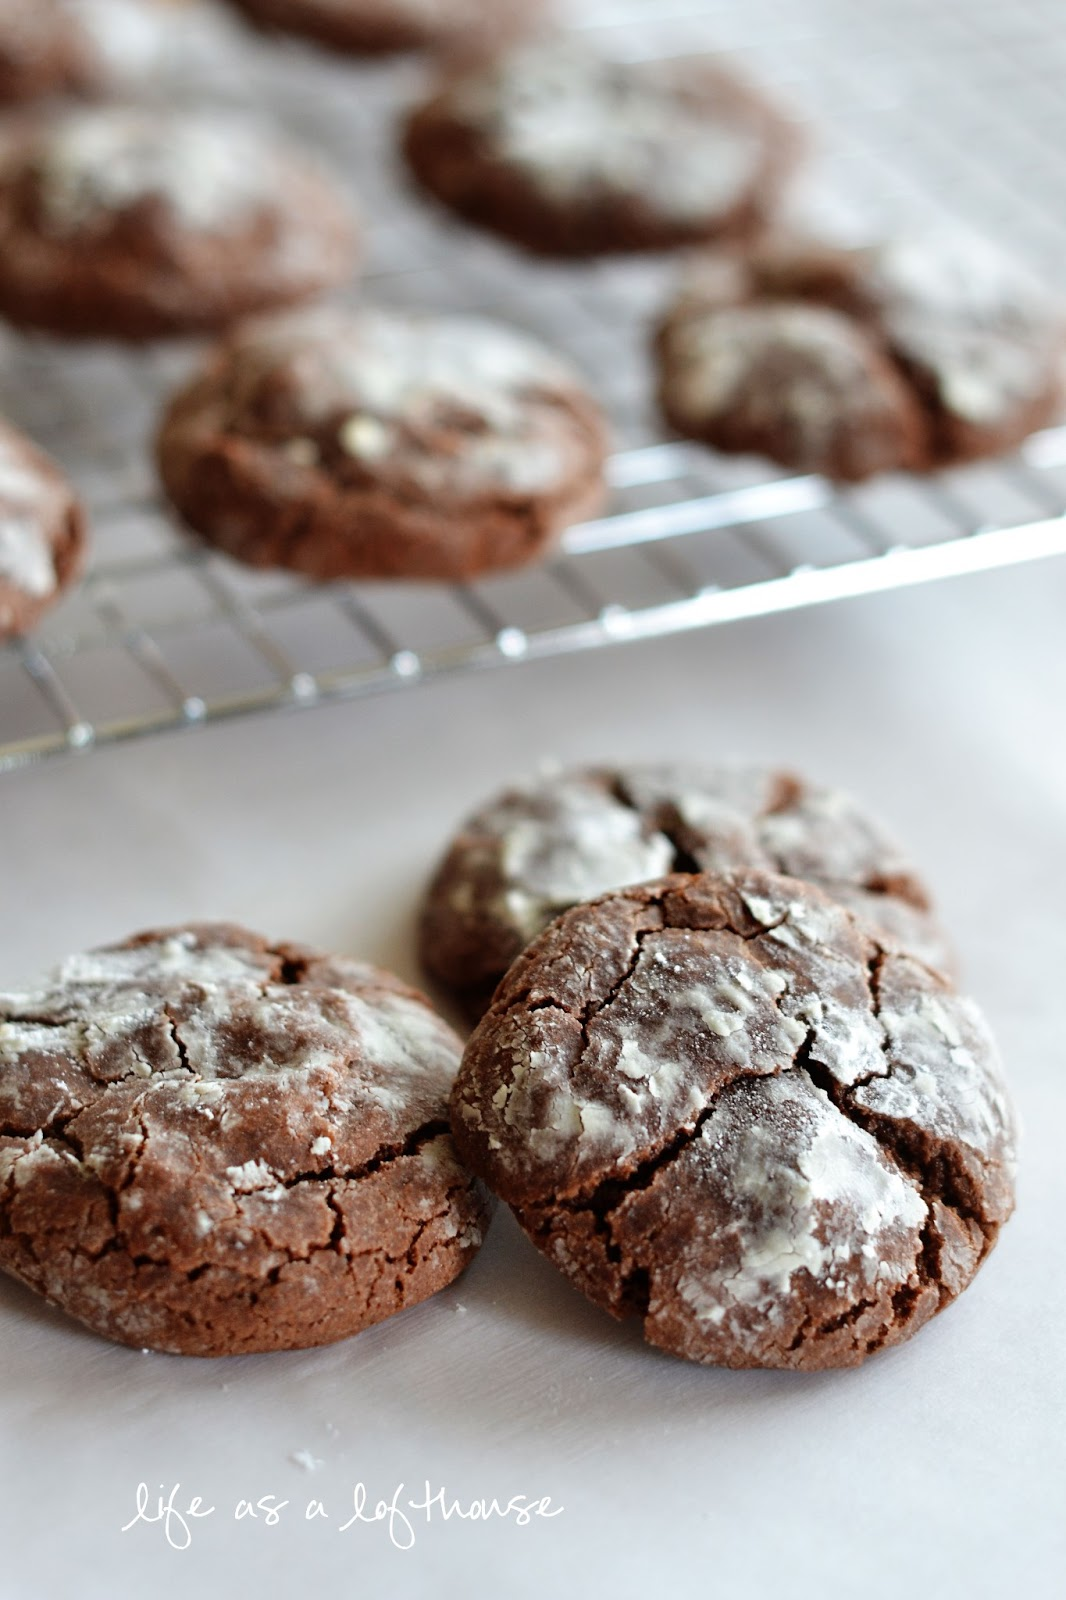 Chocolate Crinkle Cookies from Life in the Lofthouse